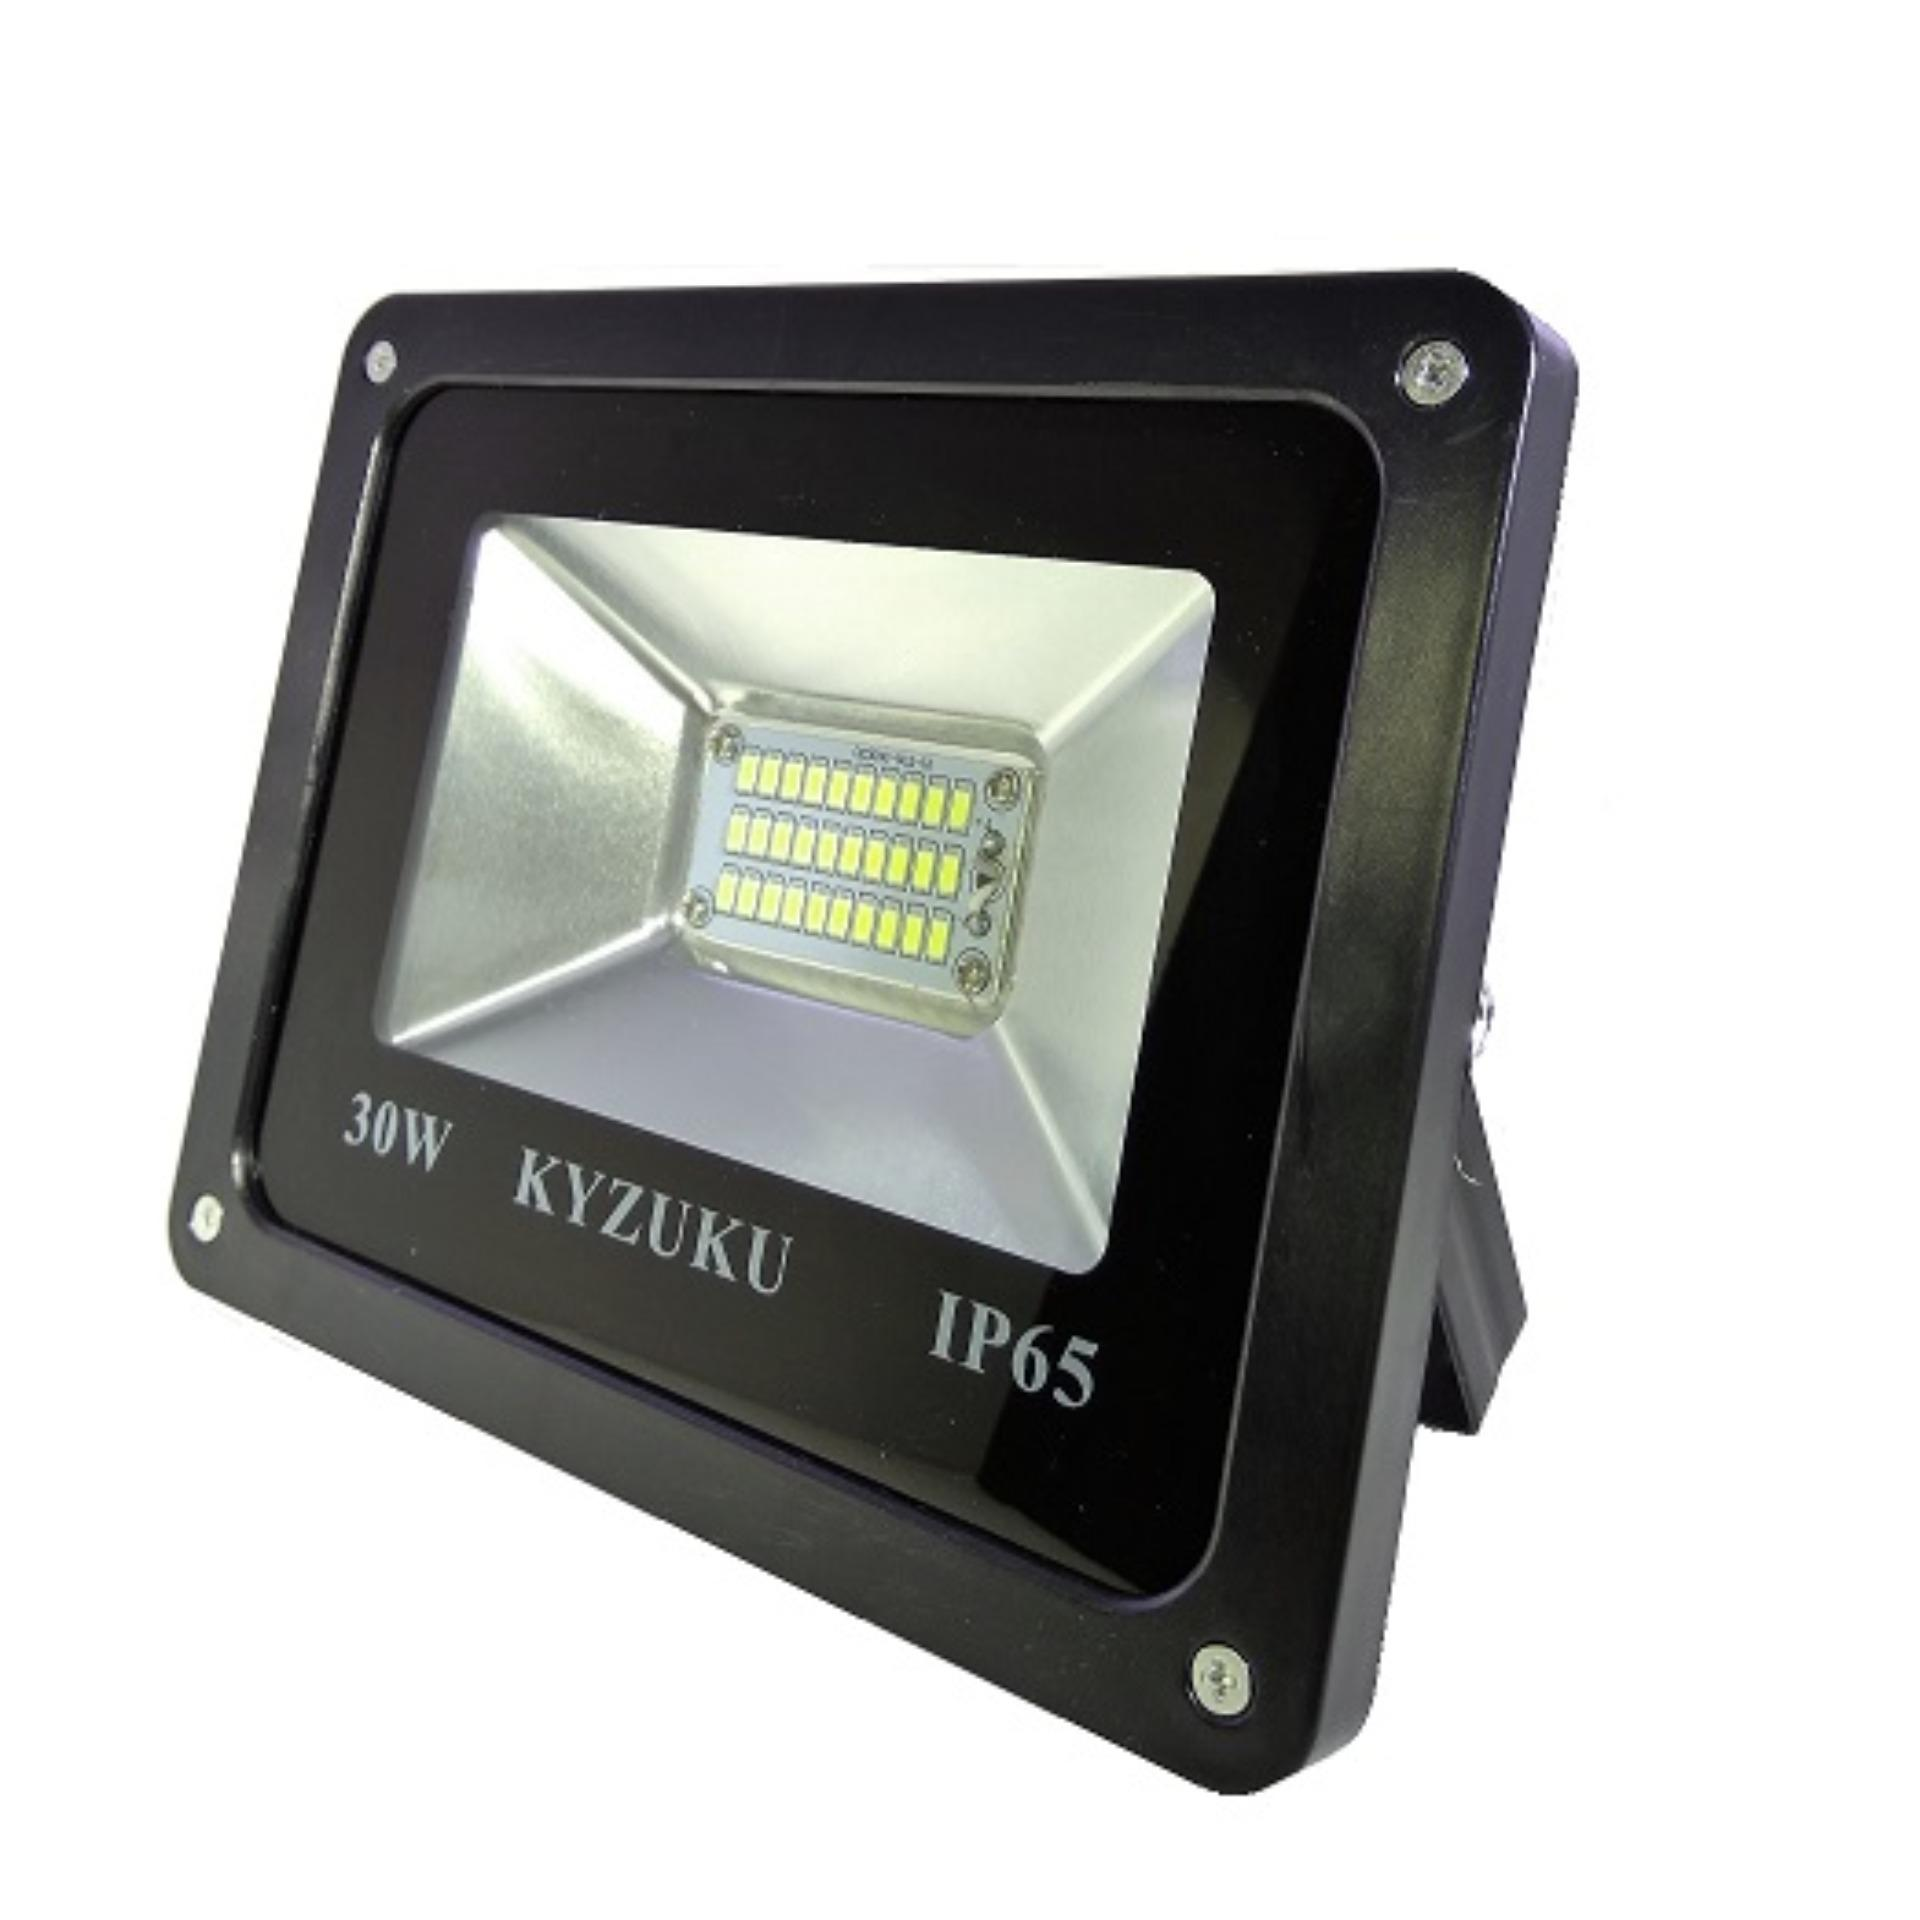 Harga Kyzuku Led Outdoor Light Lampu Sorot 30 Watt Ip65 Kyzuku Baru